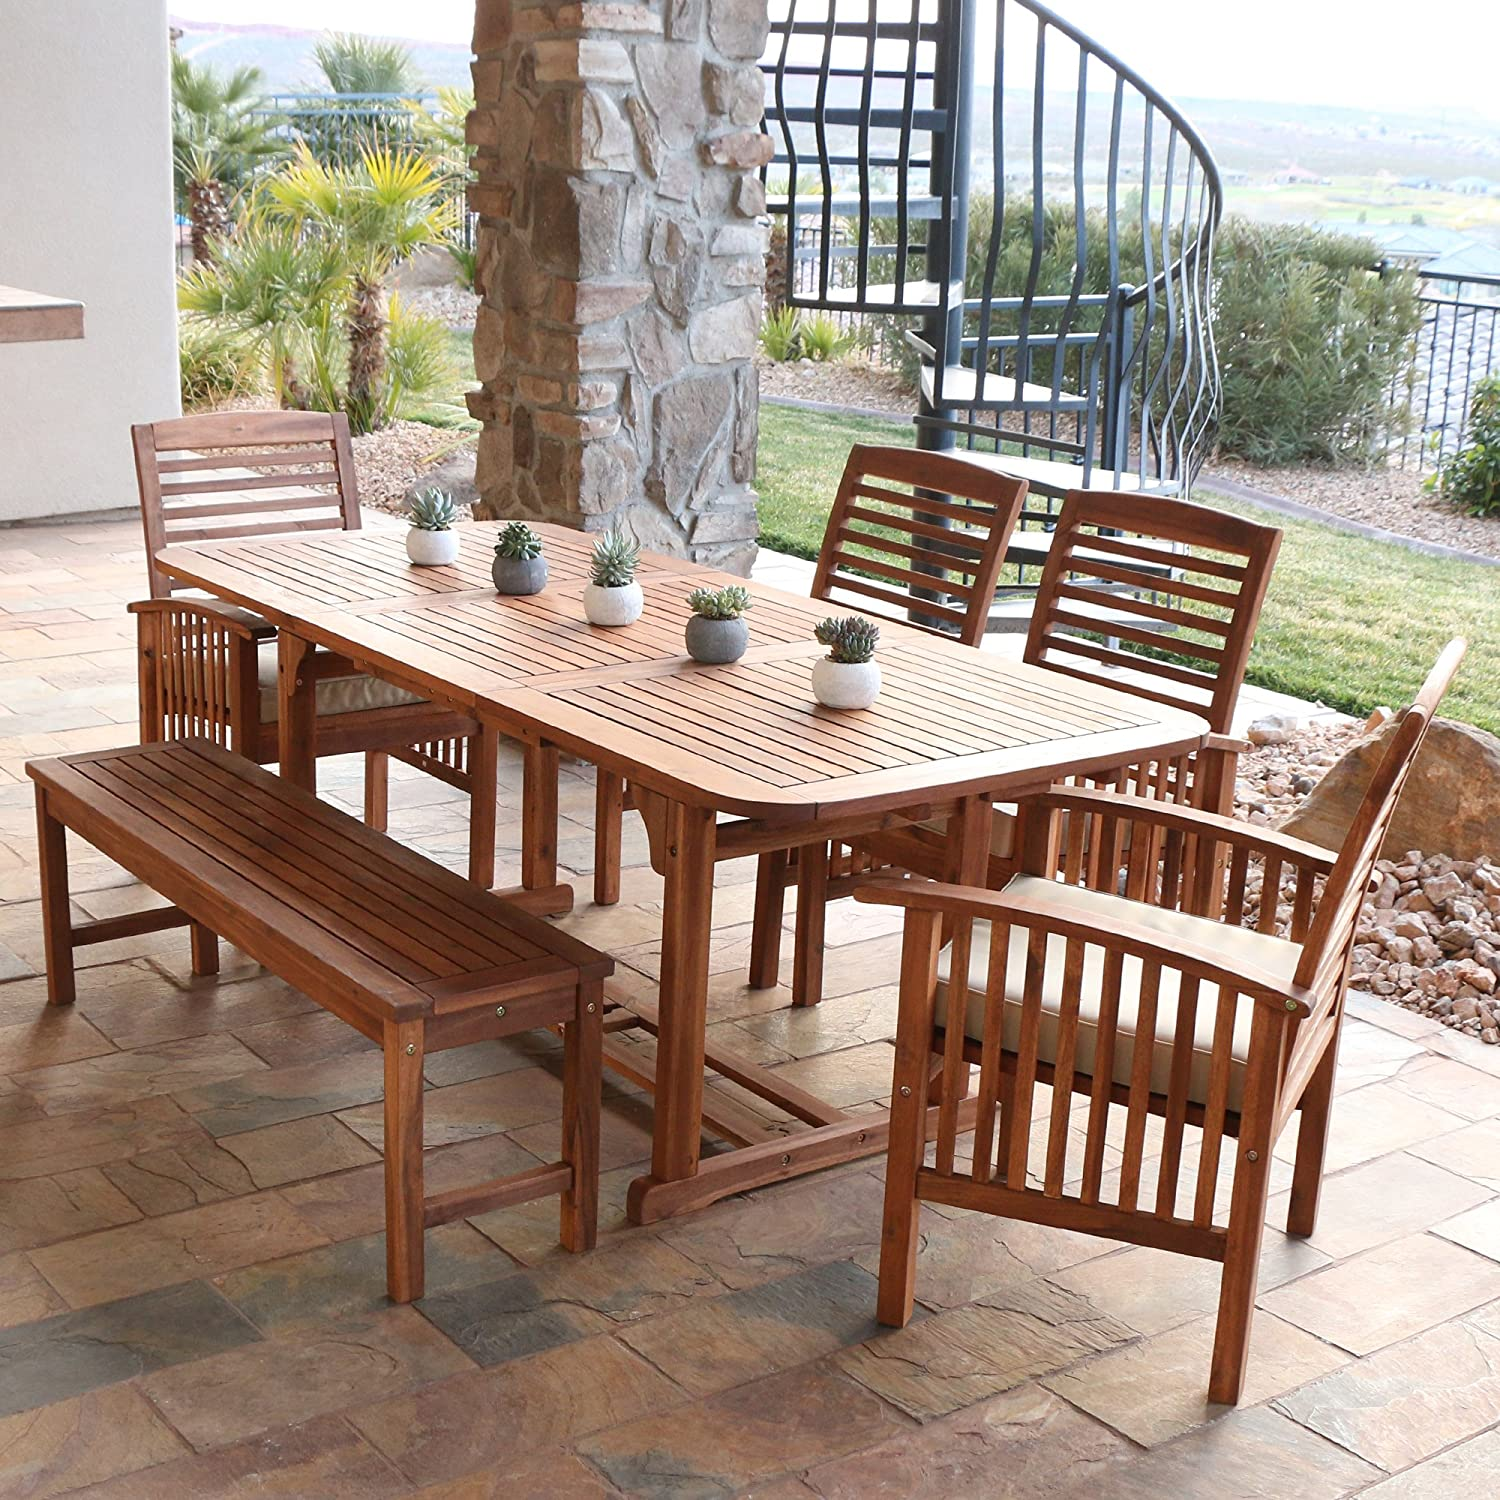 ty dining znbvllc pennington ideas pickndecor of piece patio a style sears set for palmetto design catalogue com